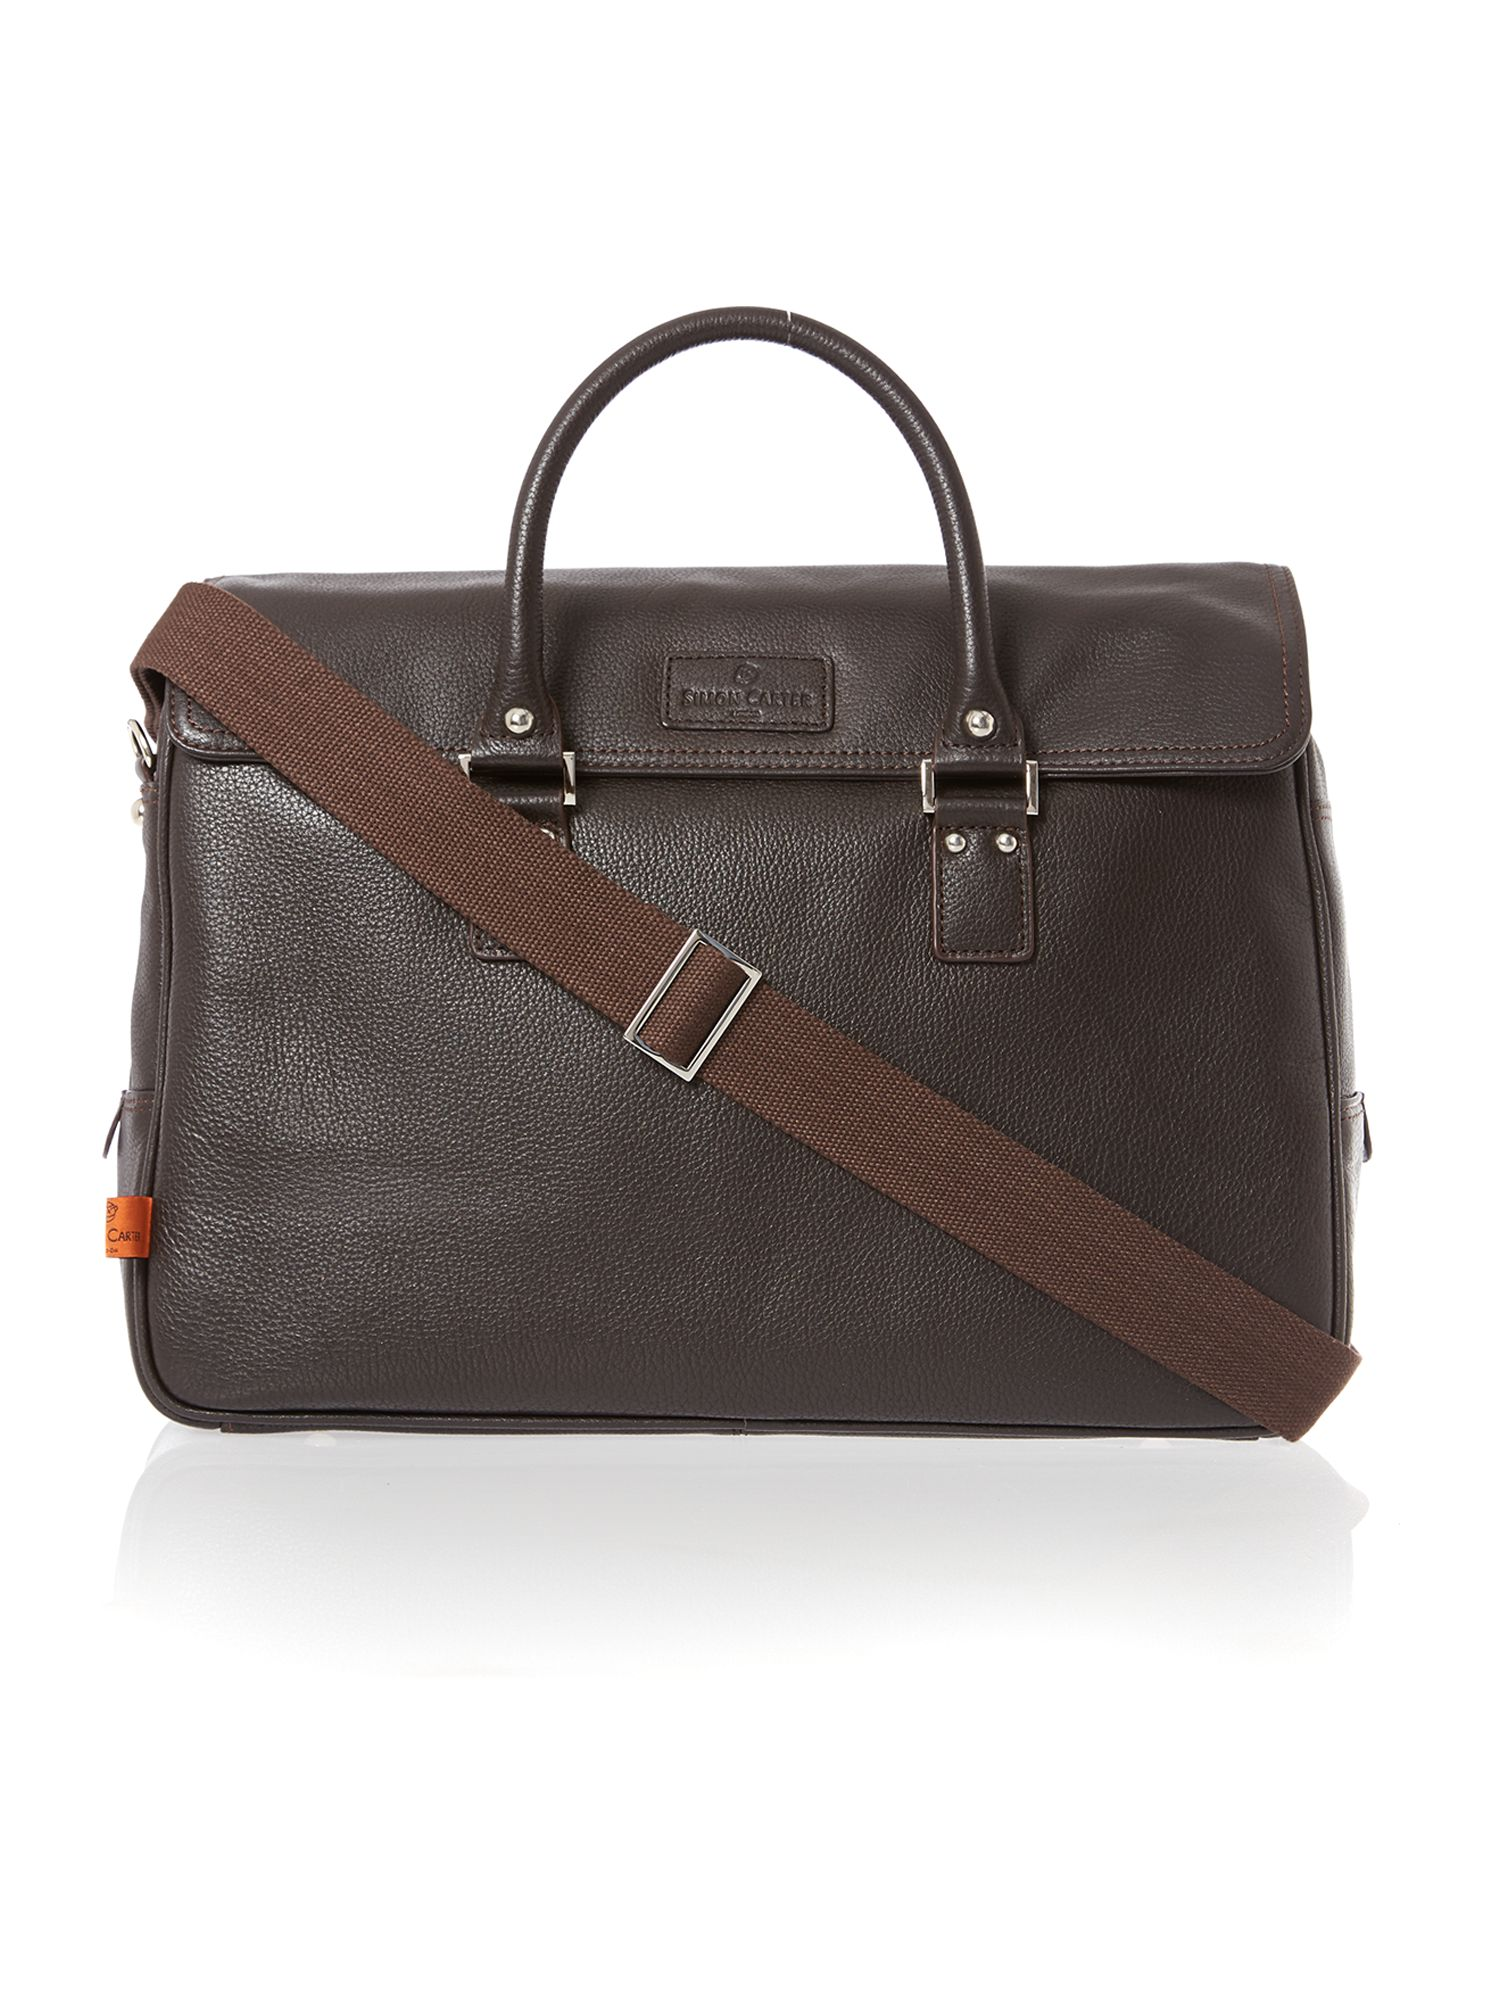 Lewis leather work bag